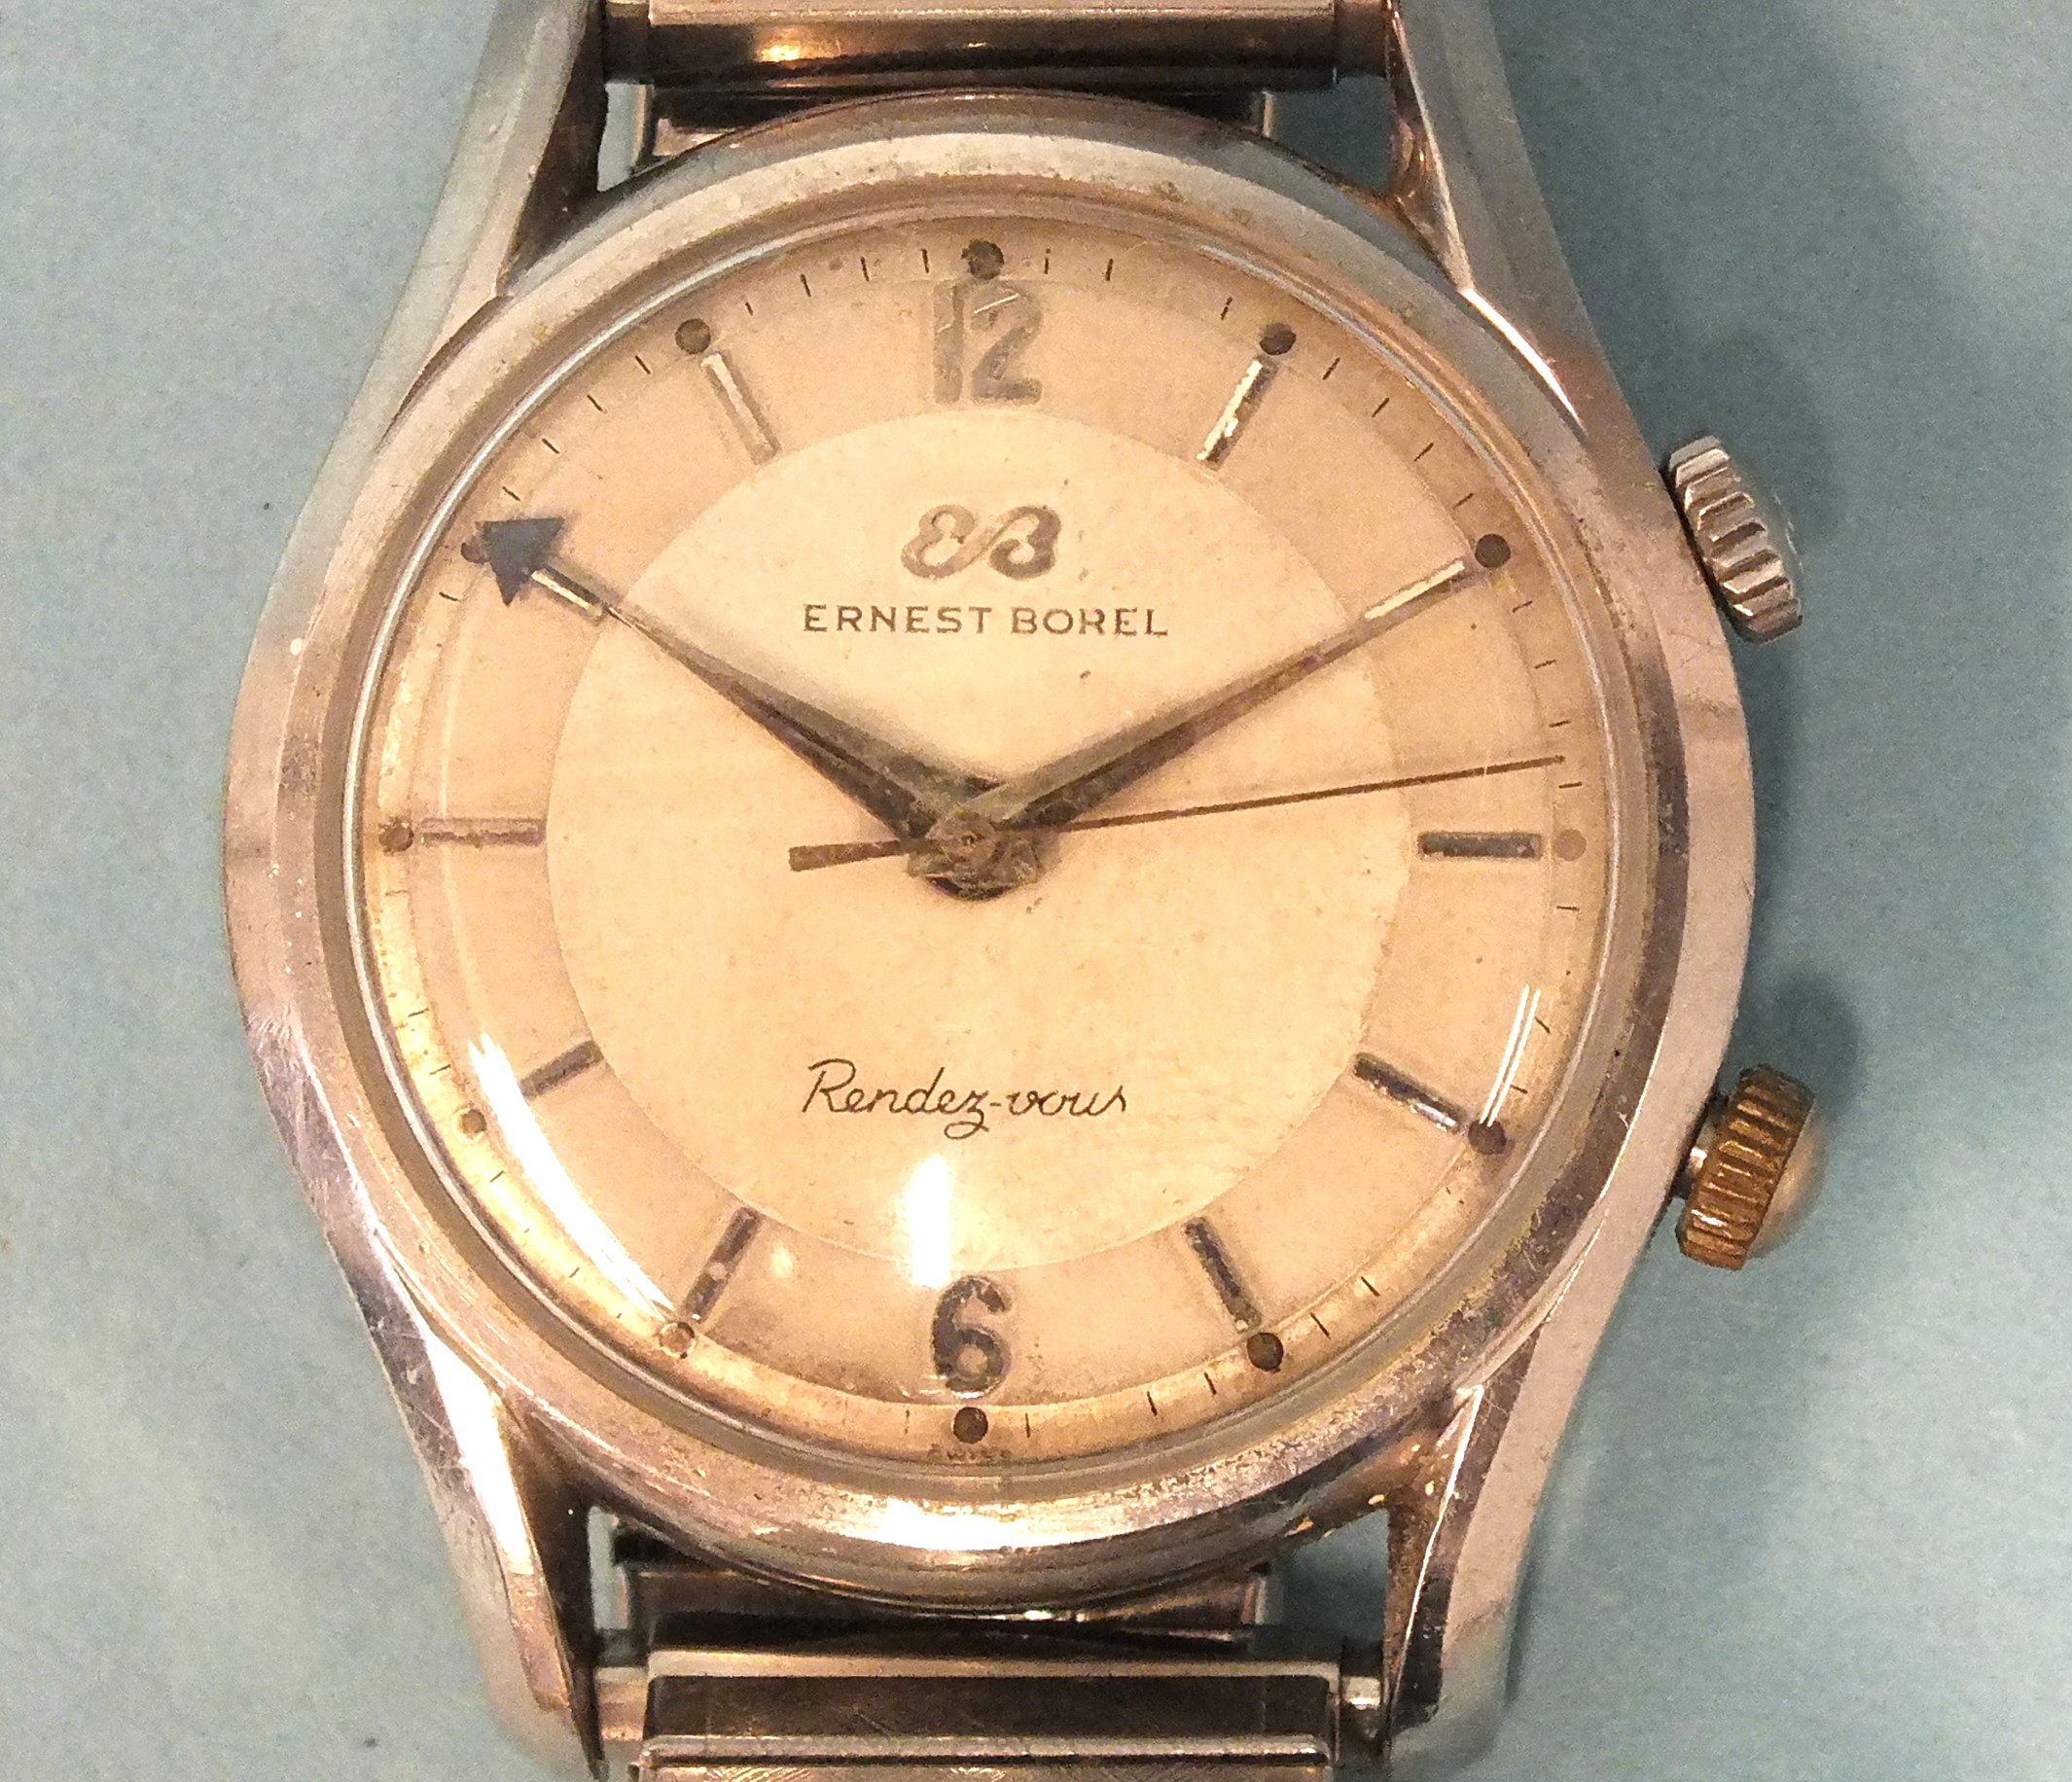 Ernest Borel, a gent's Rendez-vous alarm wrist watch c1960's, the two-tone silvered circular dial